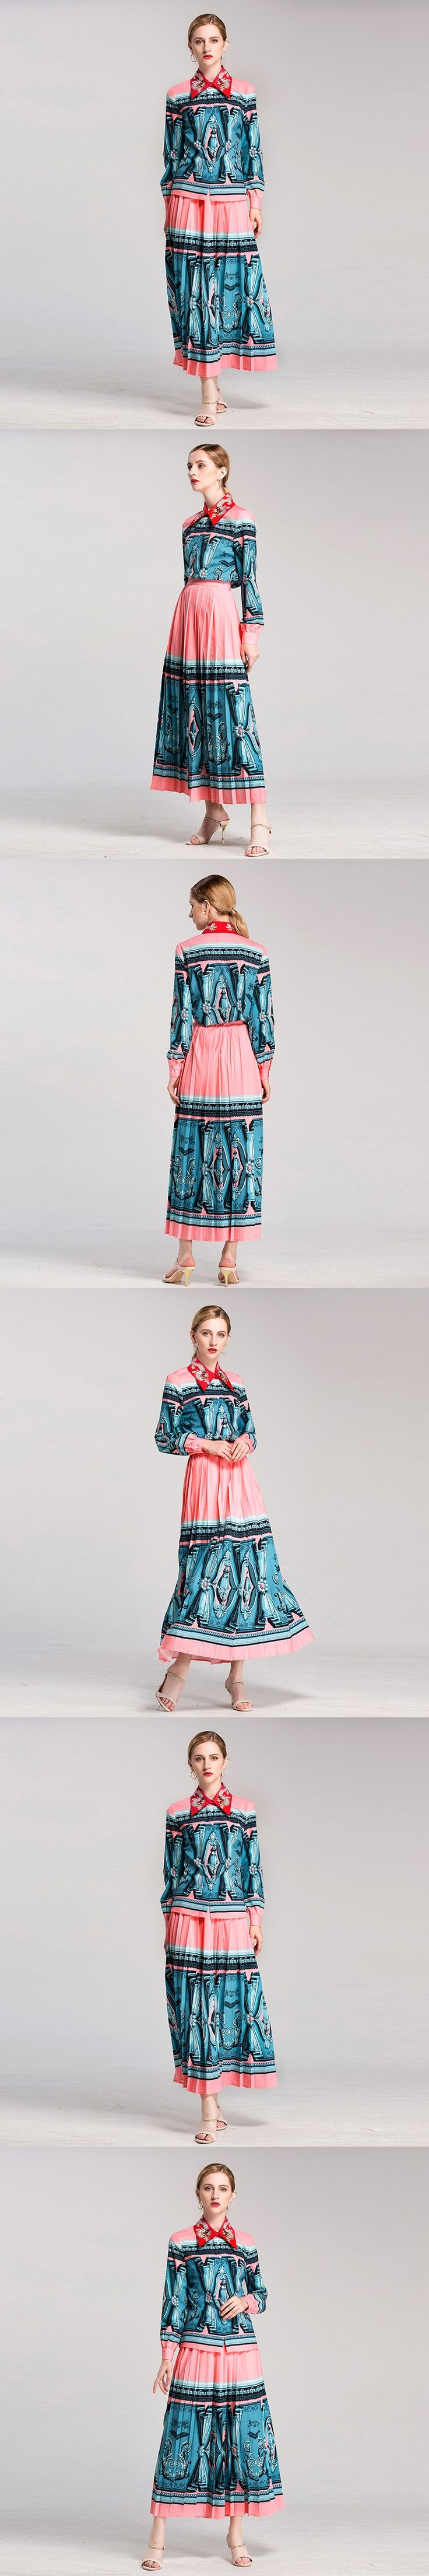 High Quality Fashion Designer Runway Two-Pieces Set Women's Long Sleeve Printed Embroidery Blouse + Pleated Skirt Suit Sets